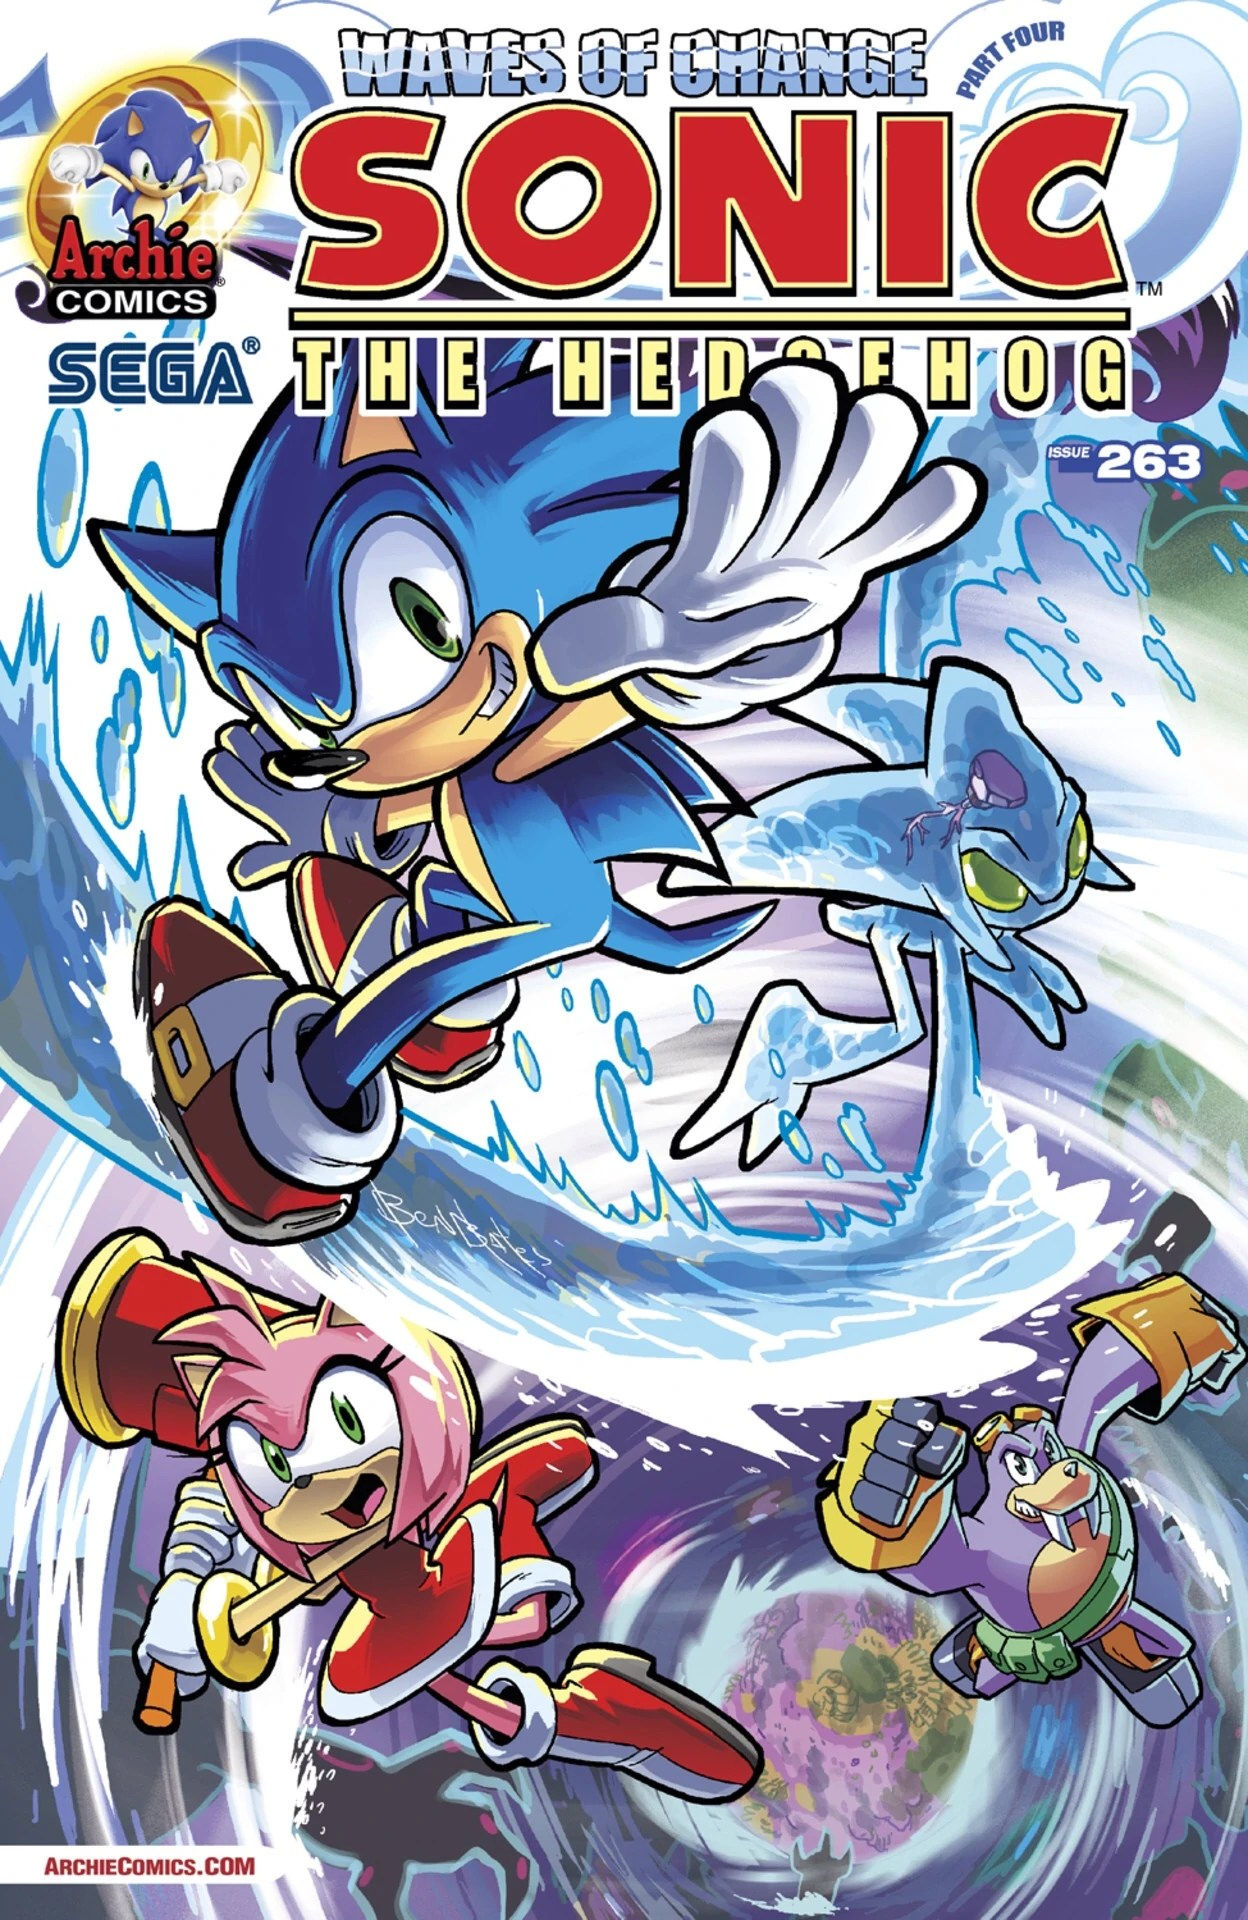 Archie Sonic the Hedgehog Issue 263  Mobius Encyclopaedia  Fandom powered by Wikia